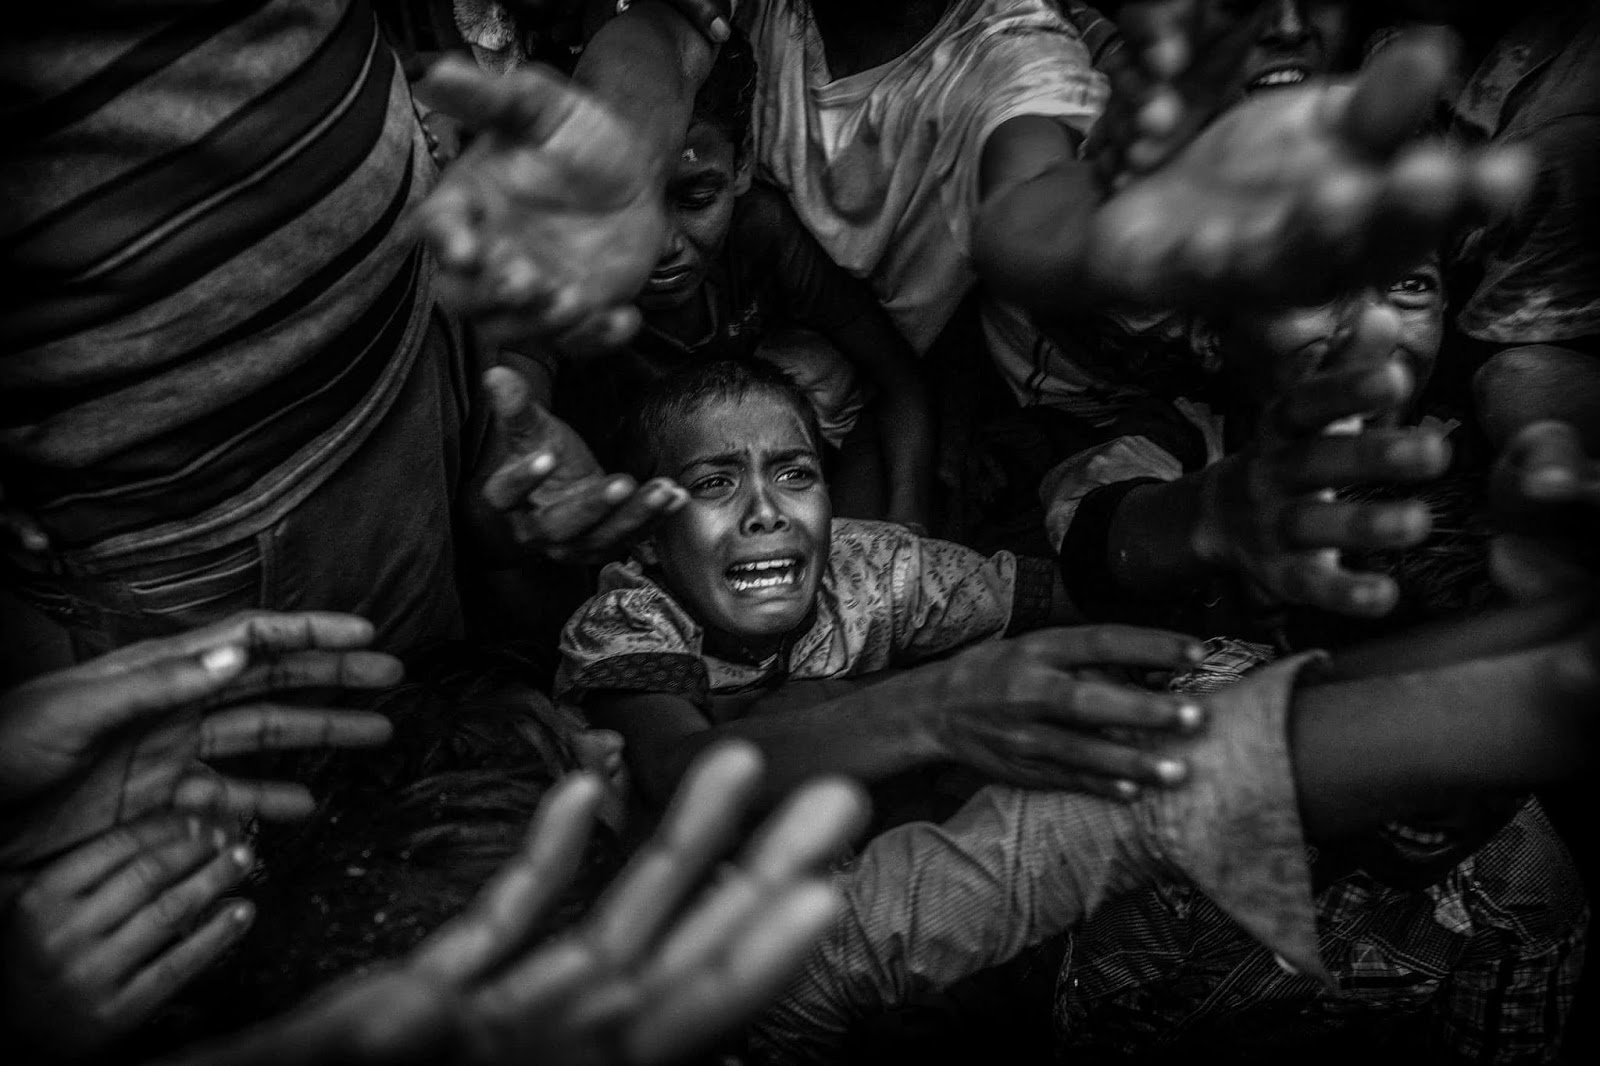 25 Of The Most Intriguing Pictures Of 2017 - Rohingya refugees flee to Bangladesh